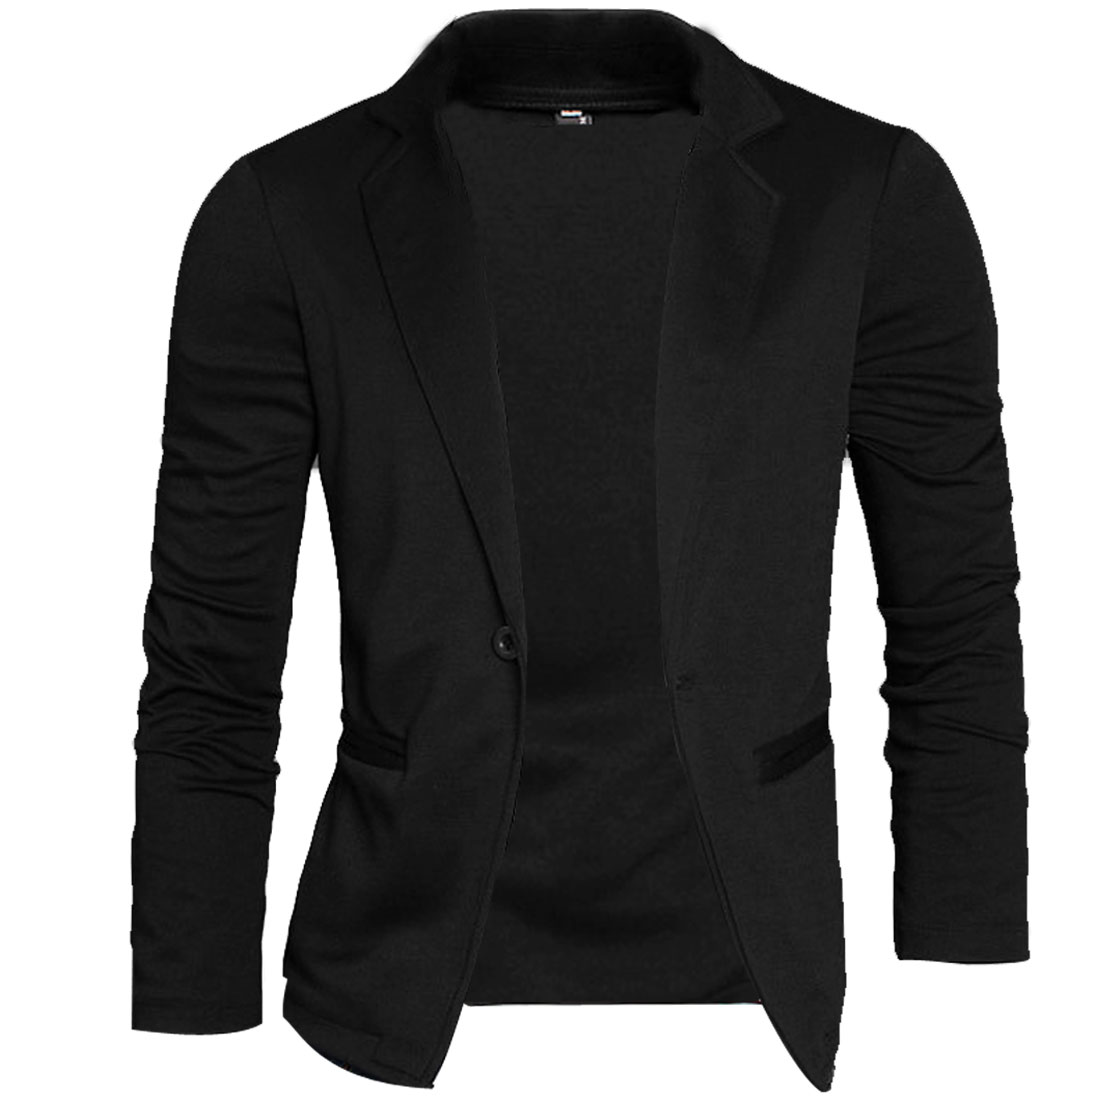 Mens Black Peaked Lapel Long Sleeve Stretchy Pockets Front Casual Blazer M